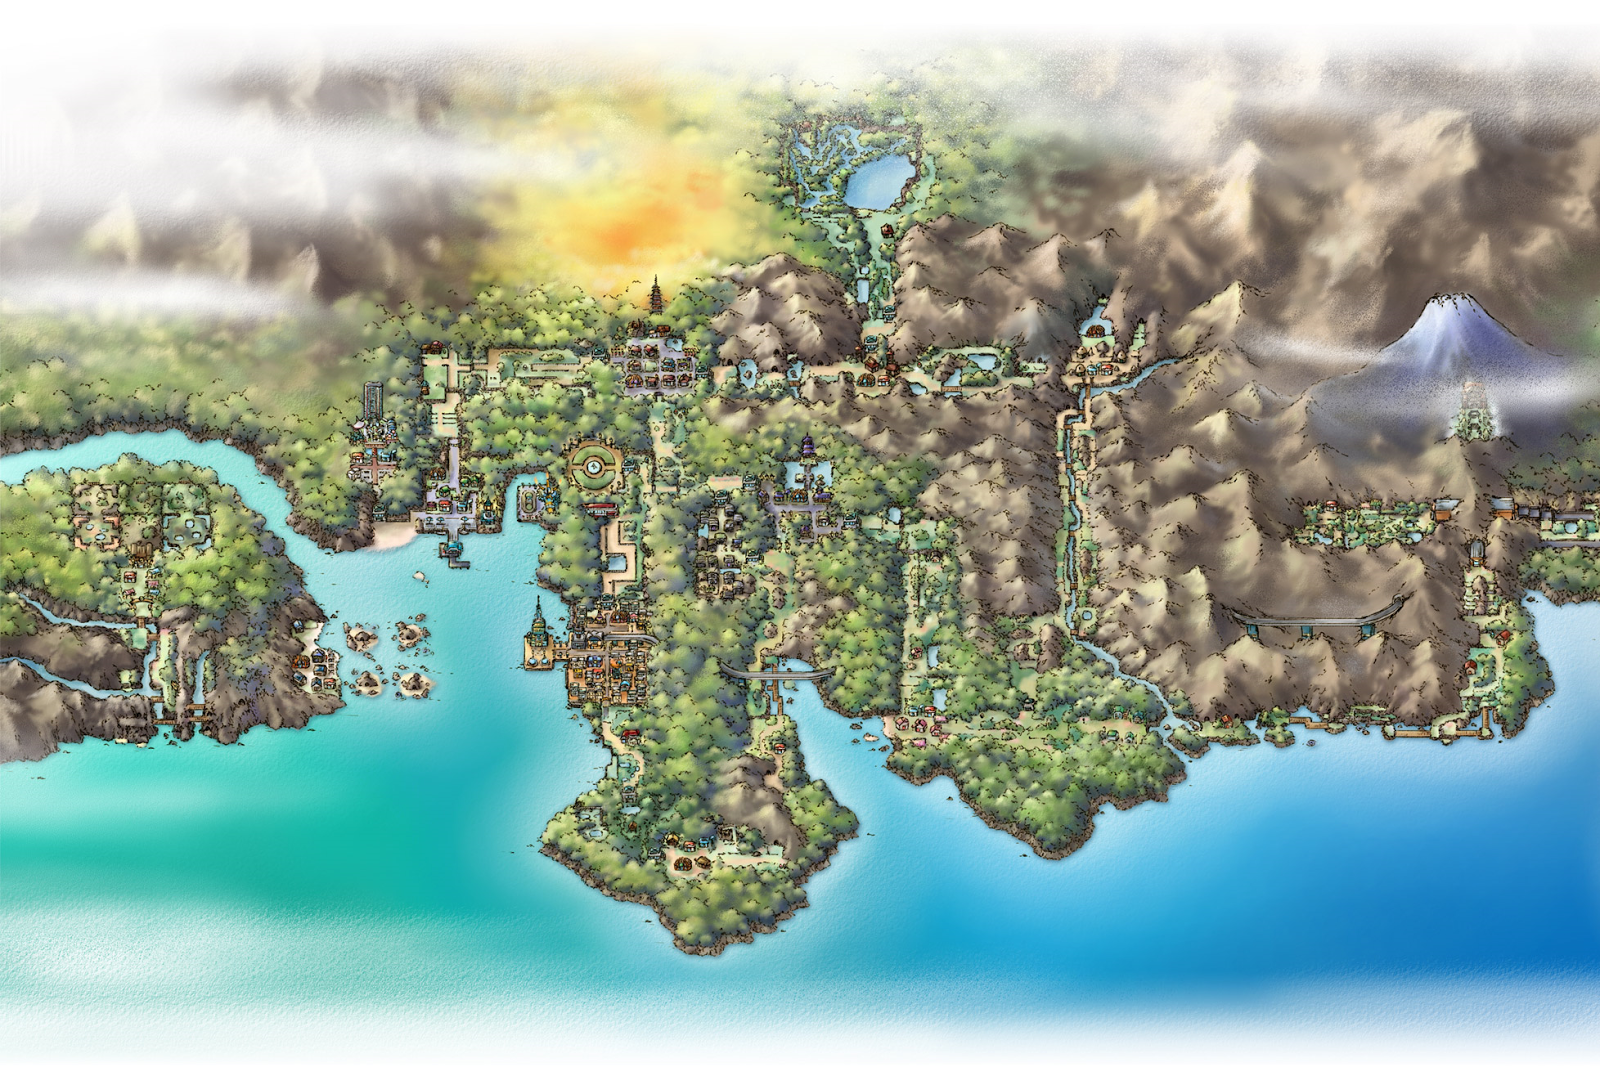 The Joel MH: Pokemon Regions in the real world